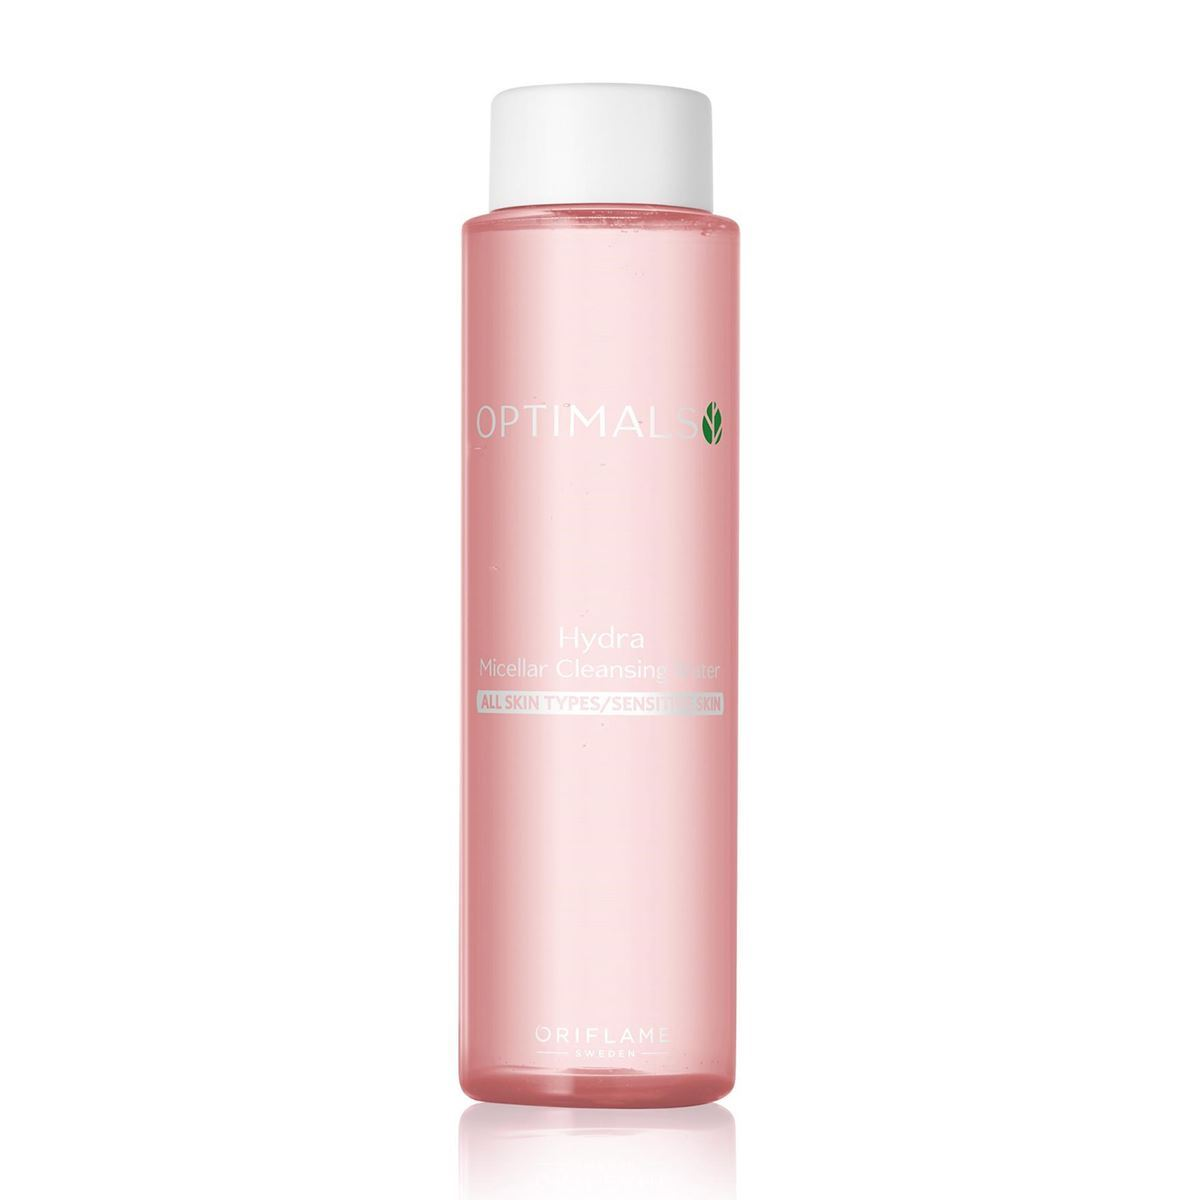 Picture of Optimal Hydra Micellar Cleansing Water